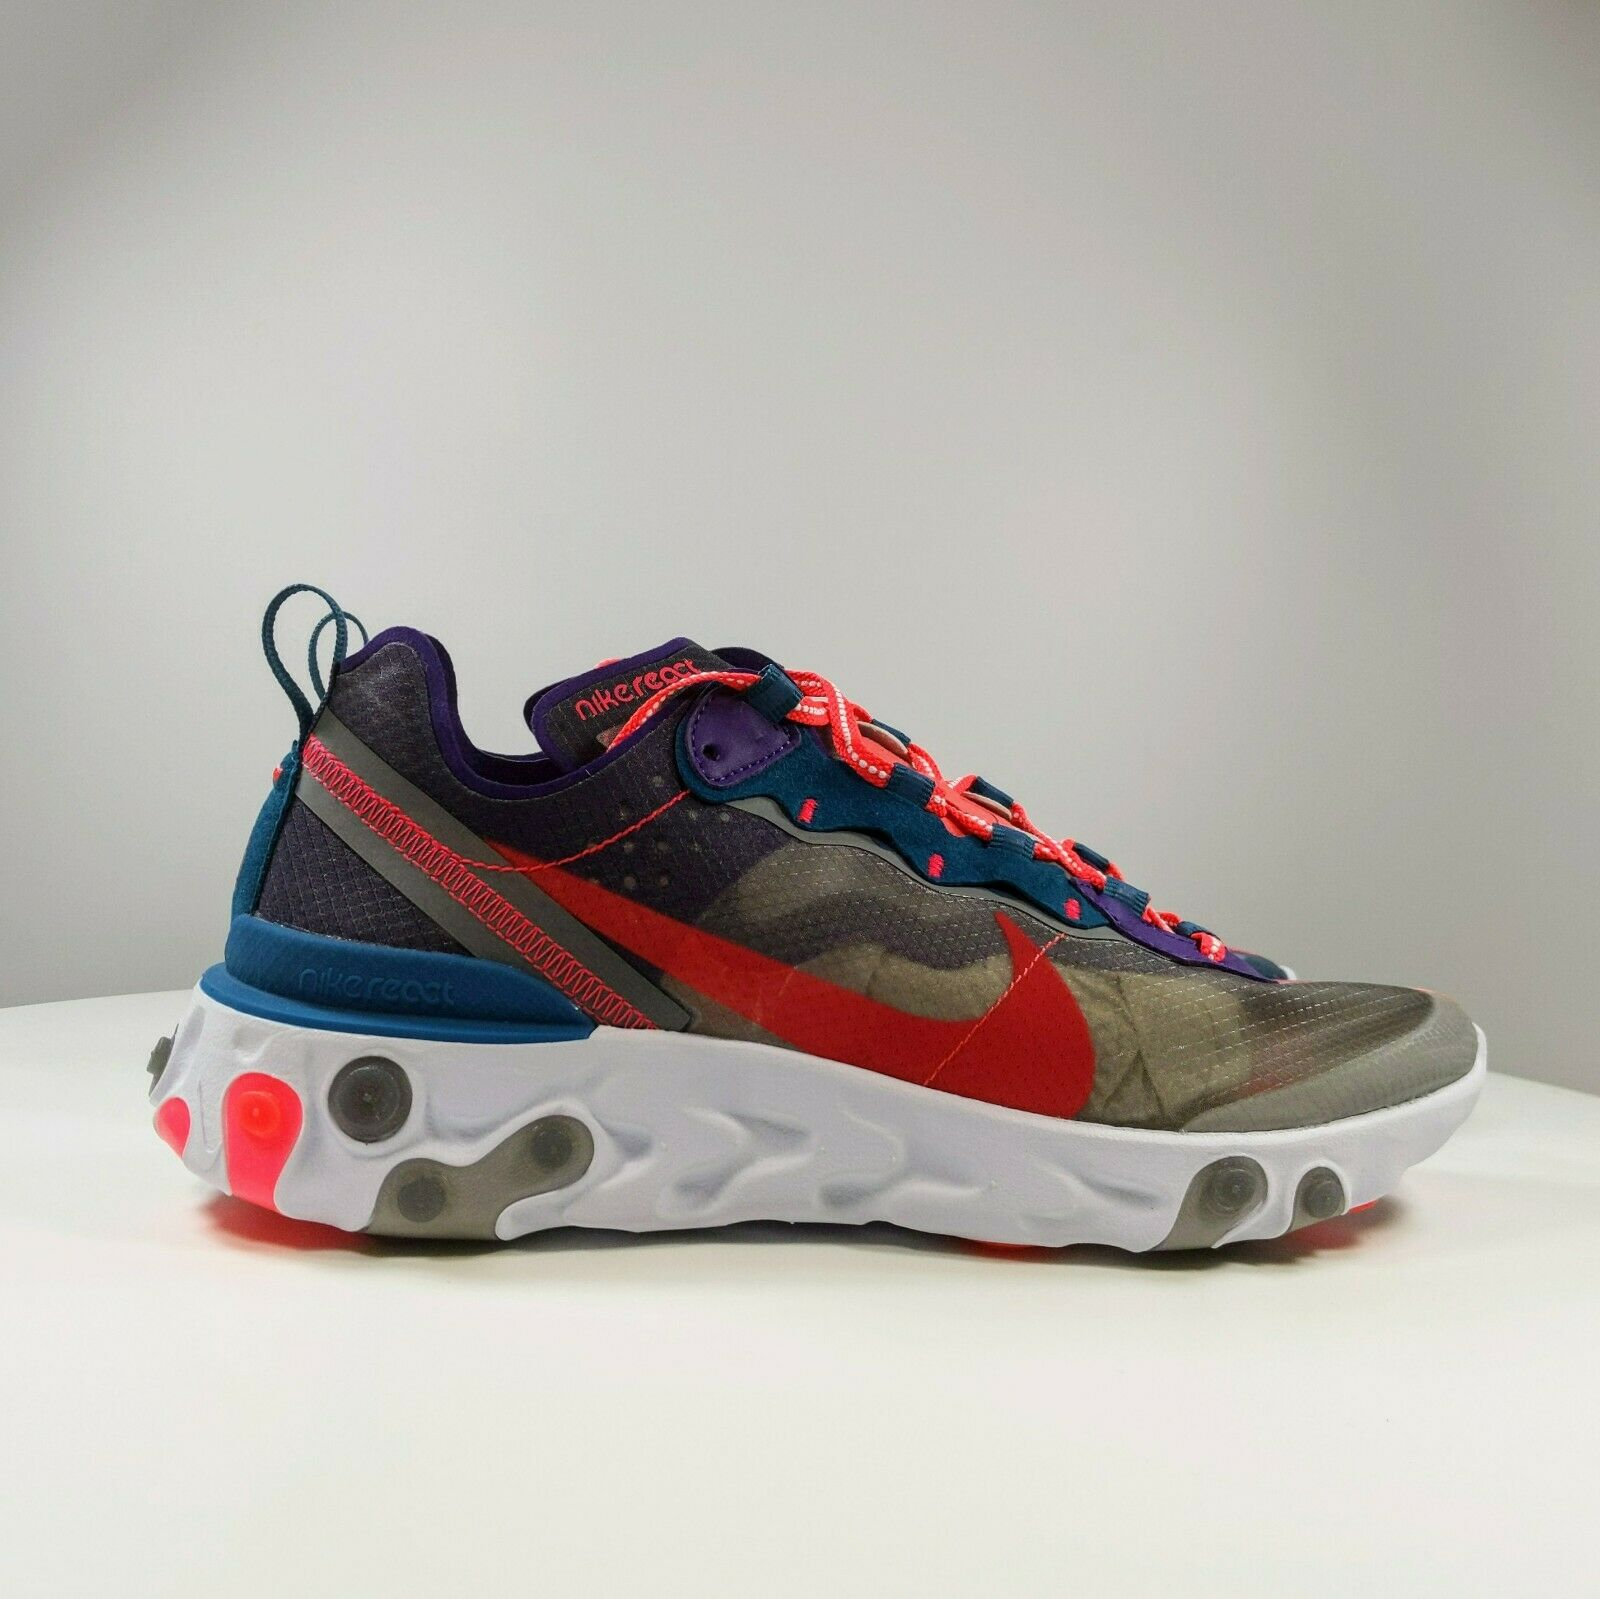 Nike React Element 87 Red Orbit